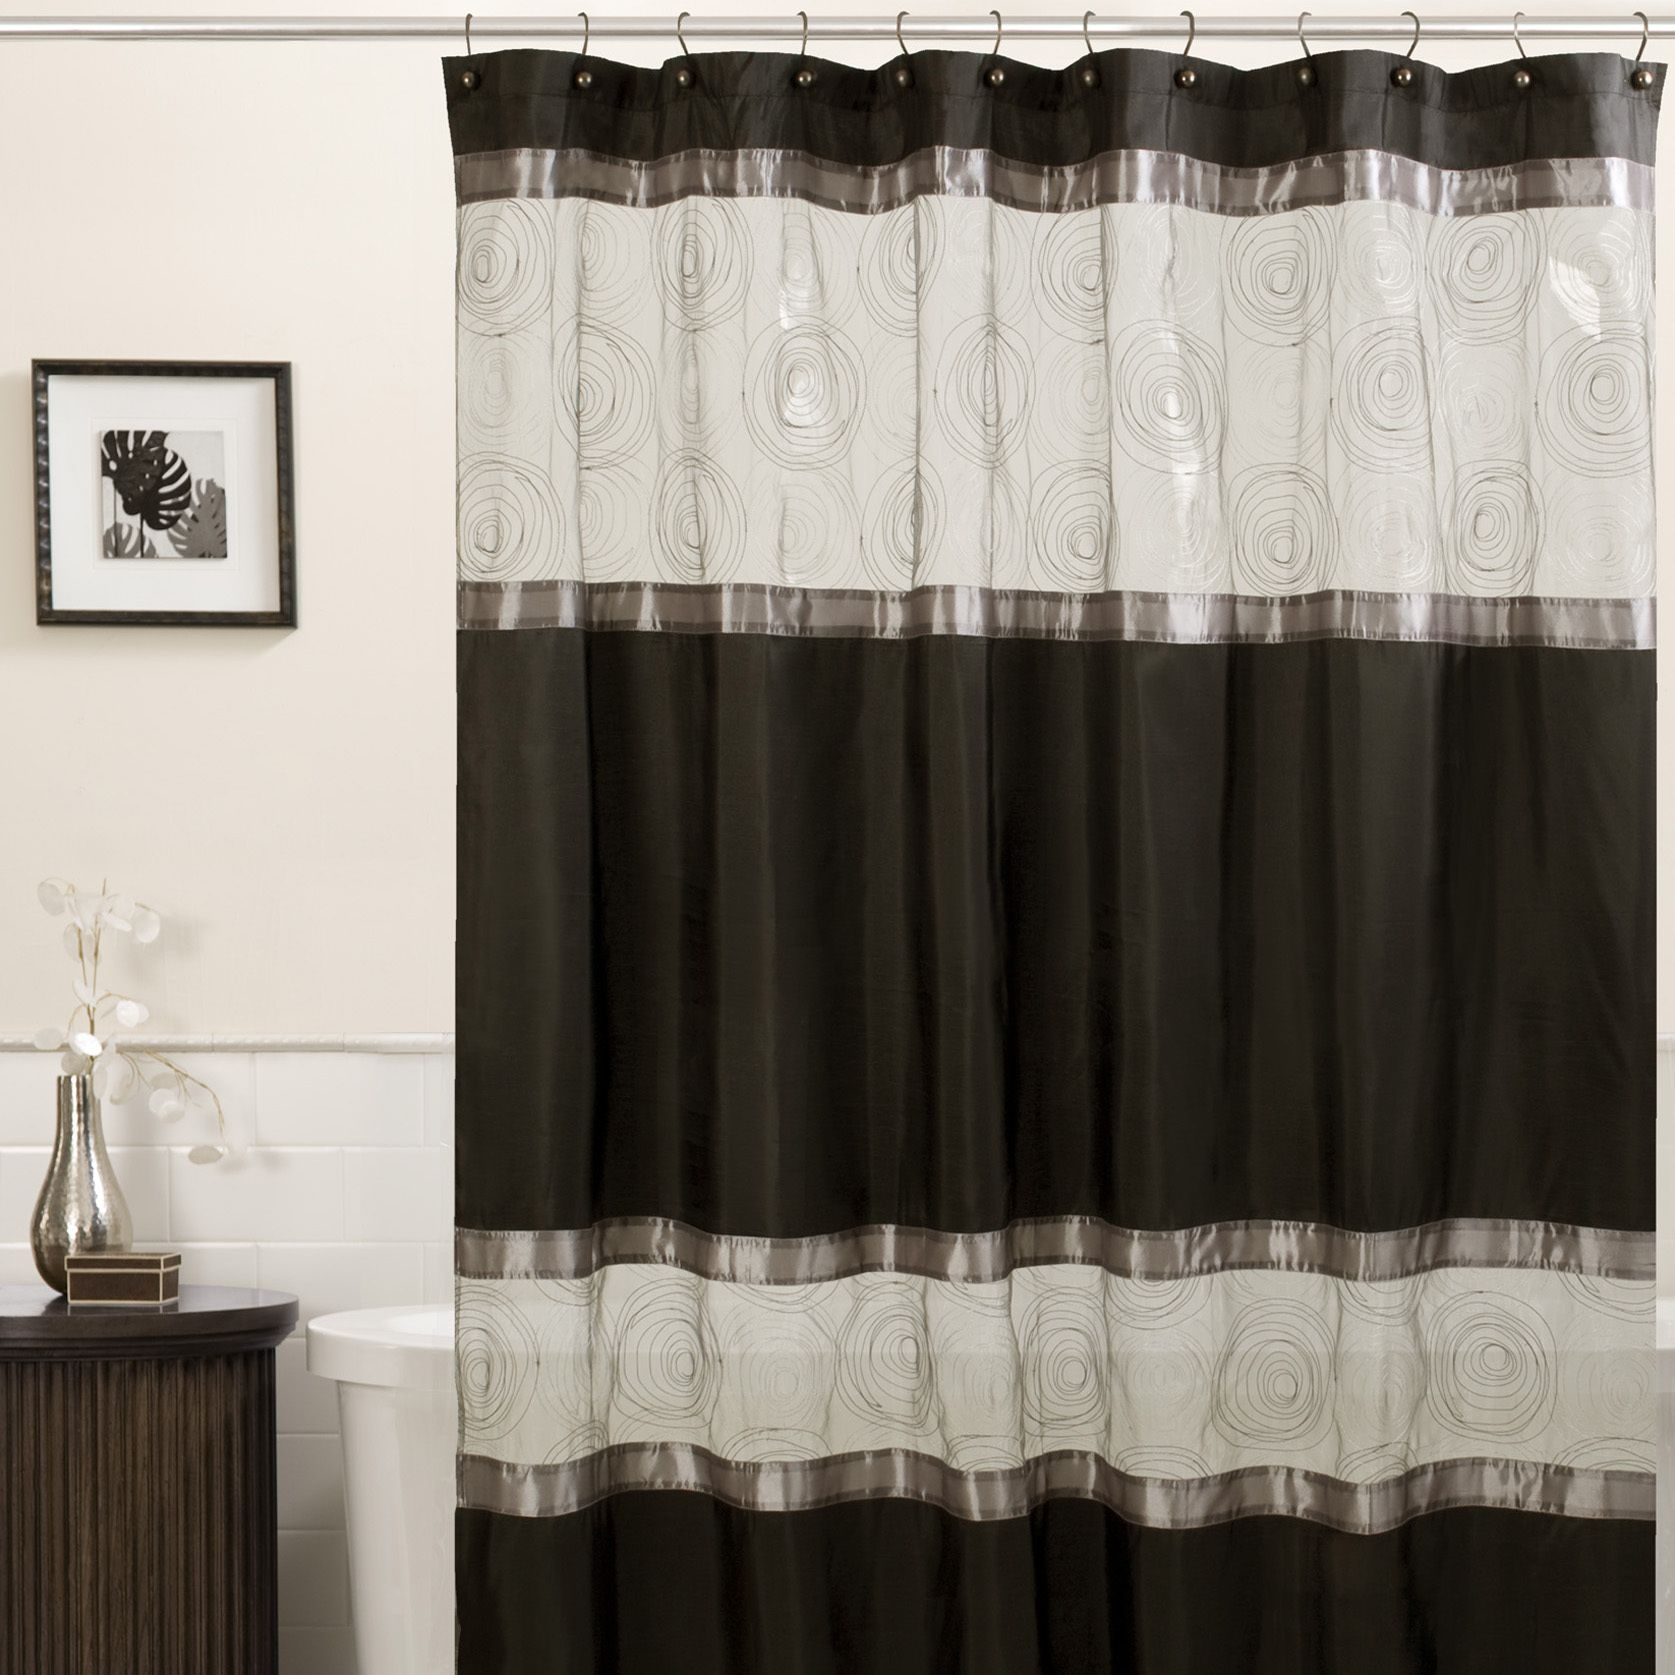 Maytex Shower Curtain I Love The Idea Of This Shower Curtain But